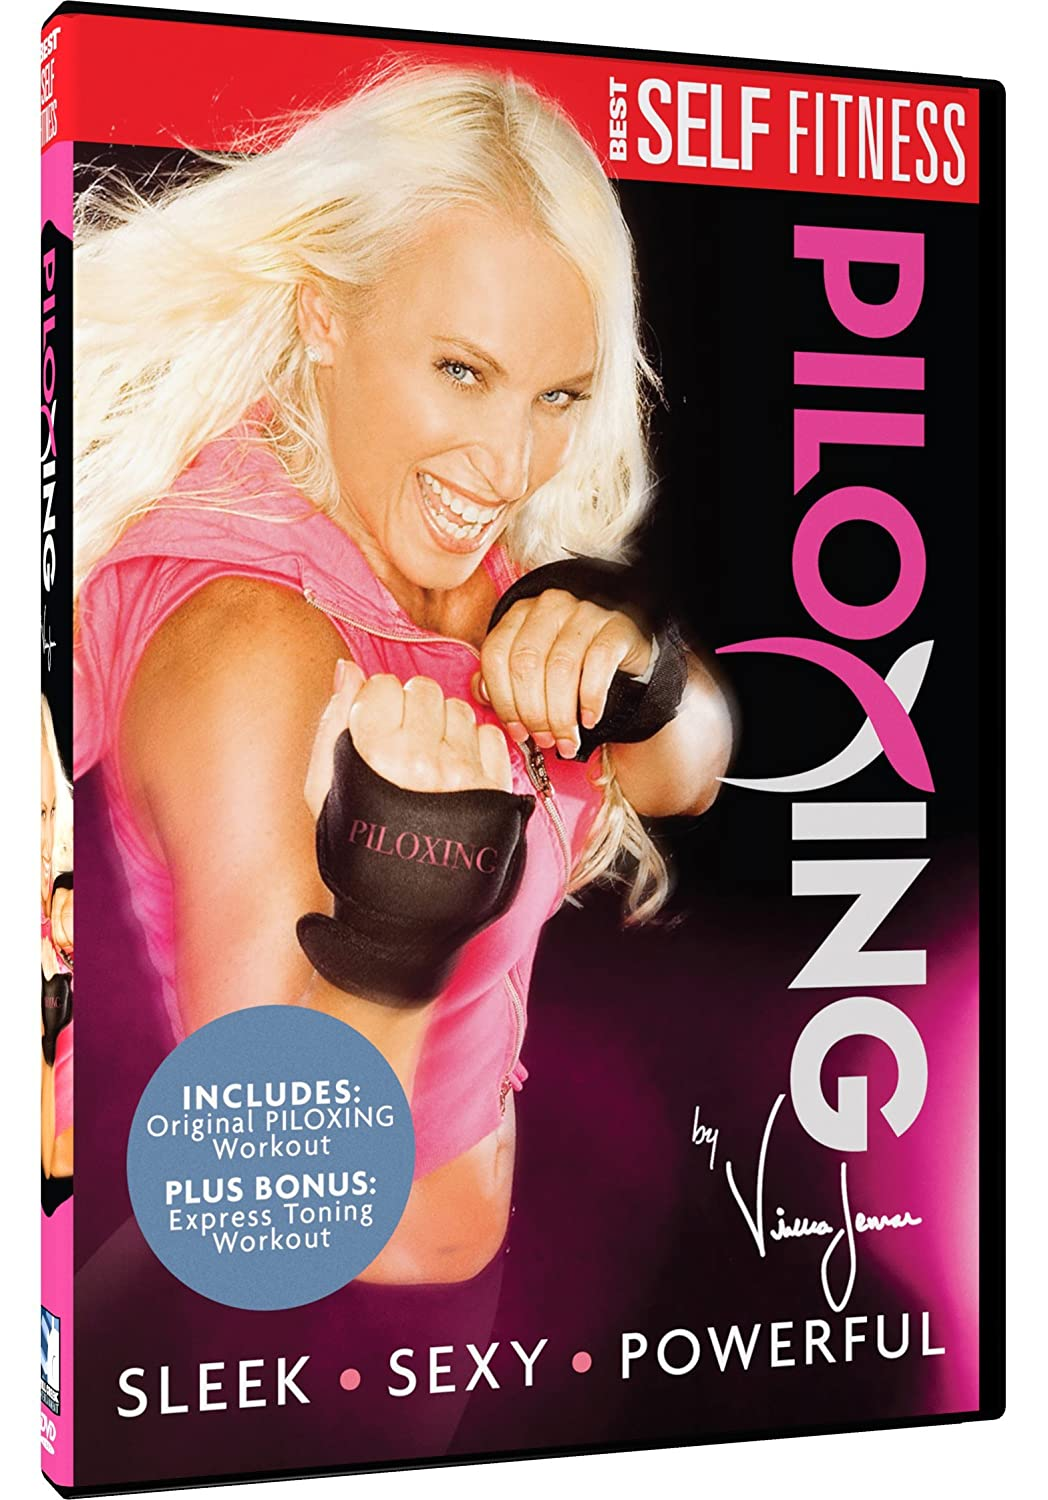 Mens piloxing gloves - Amazon Com Piloxing The Original V Pilates Workout Bonus Viveca Jensen Various Movies Tv